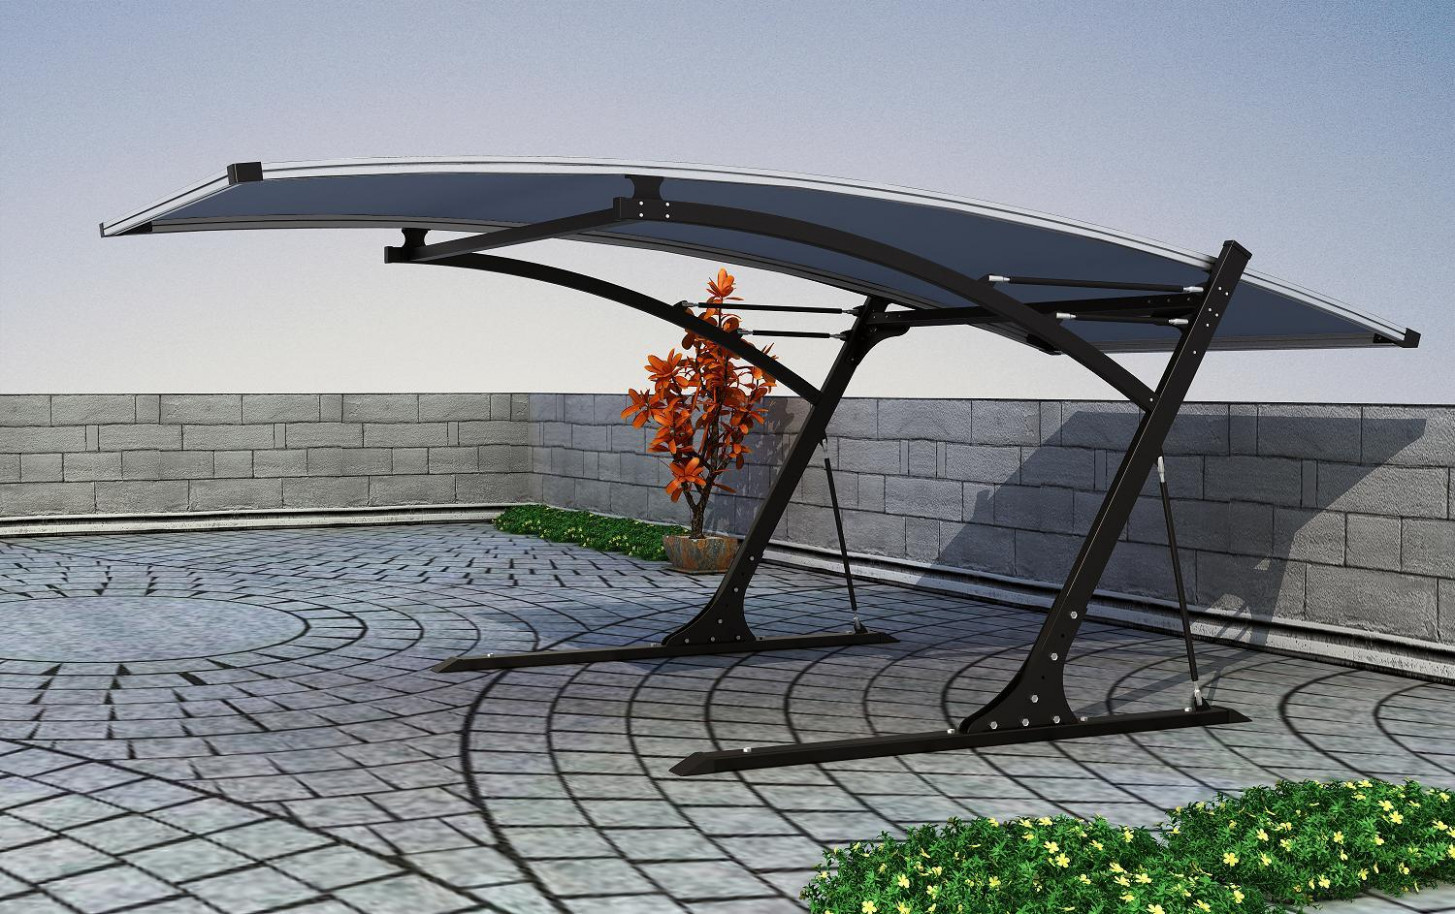 [Hot Item] Modern Flat Roof Polycarbonate Carports Images Of Flat Roof Carports